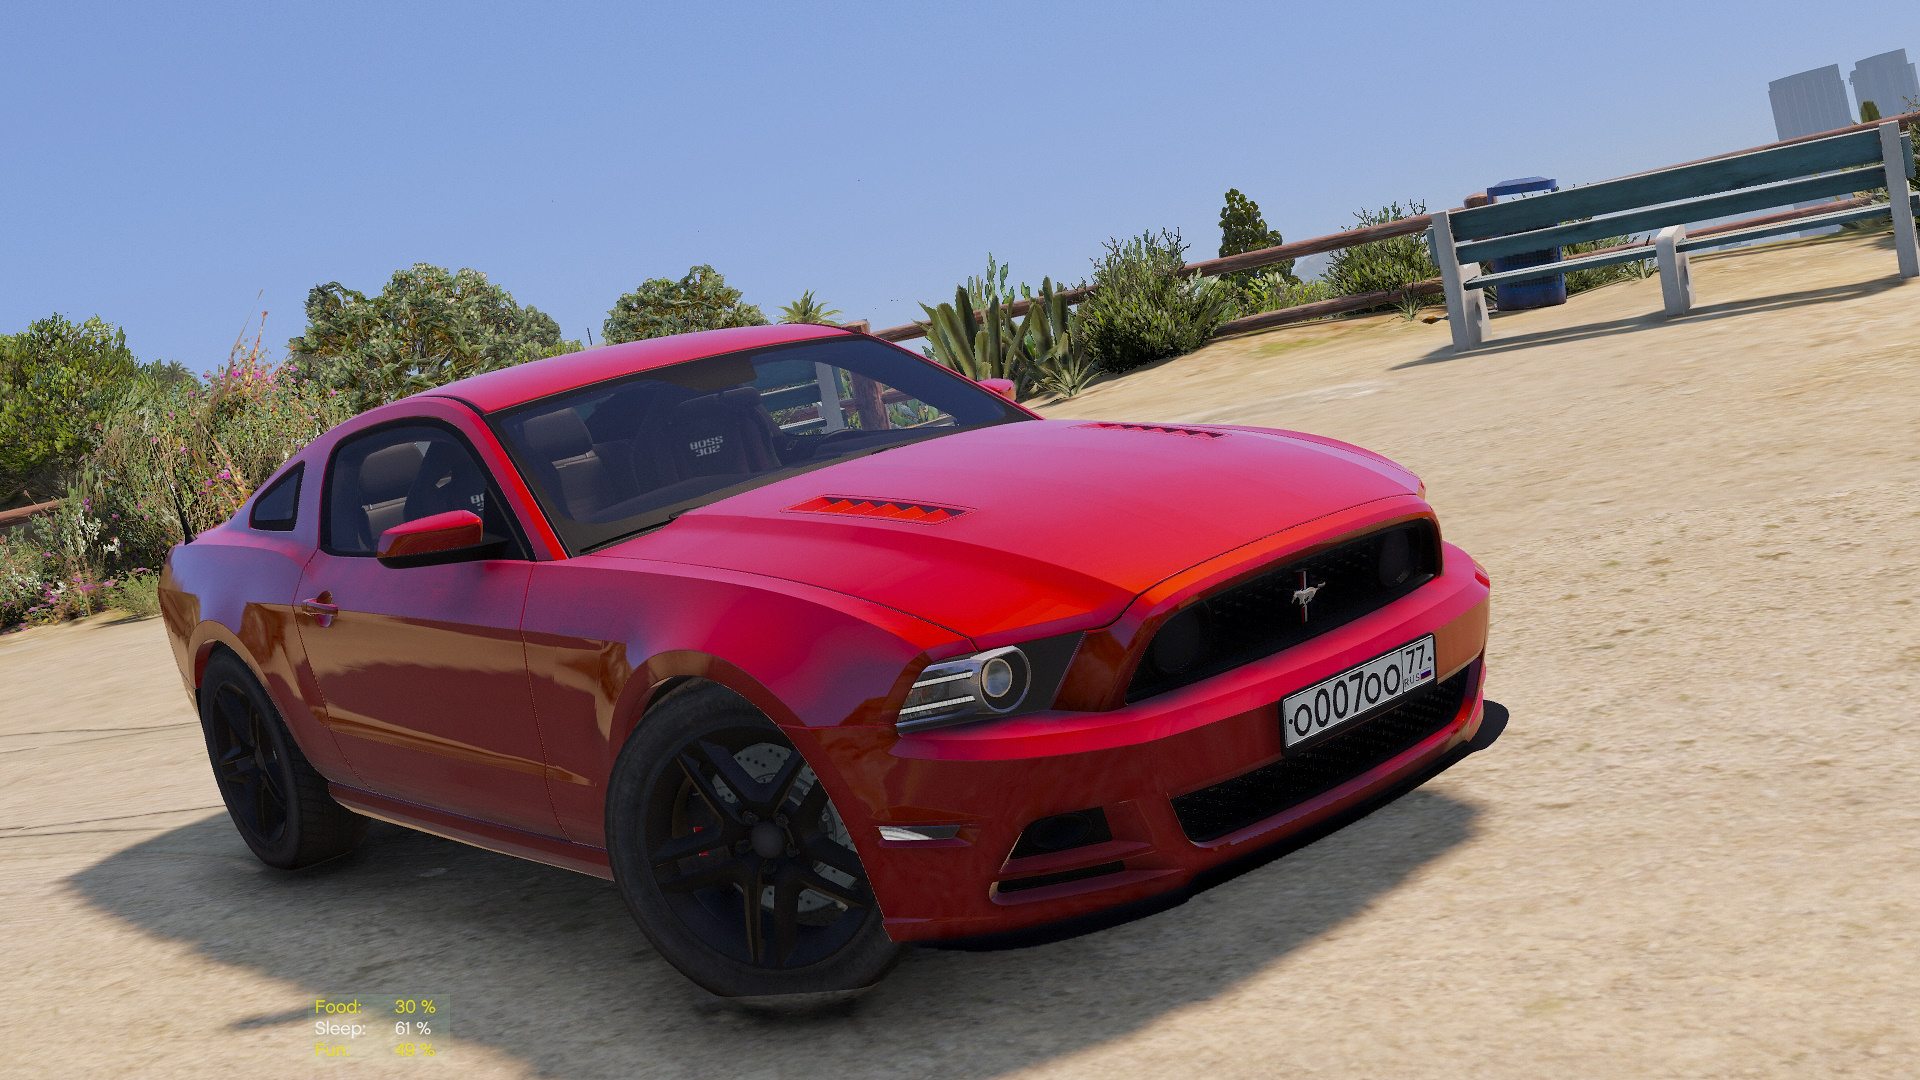 Ford Mustang Boss 302 2013 [Add Replace HQ] GTA5 Mods